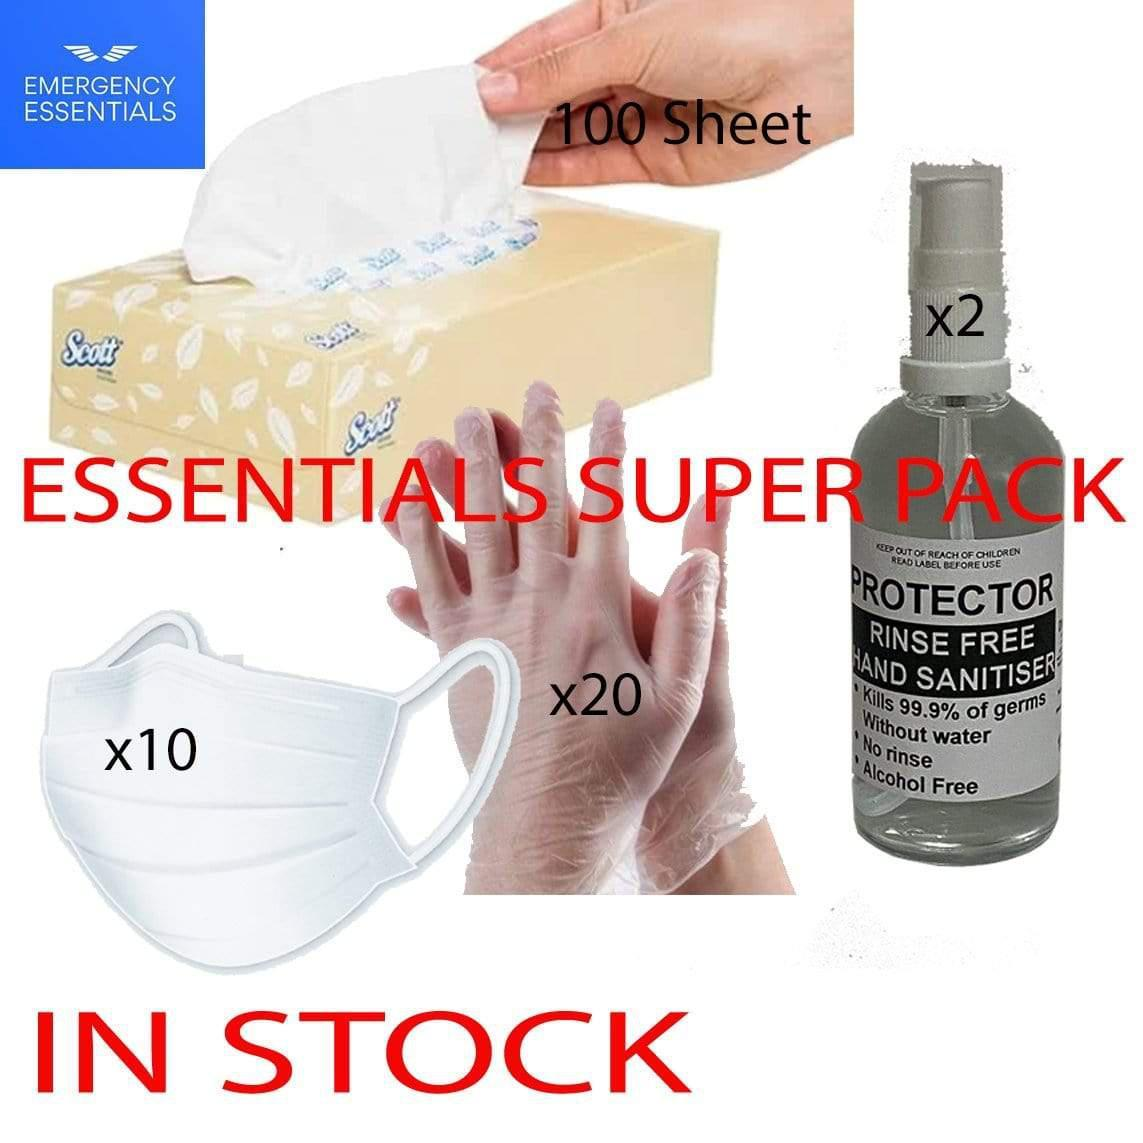 Essentials Super Pack